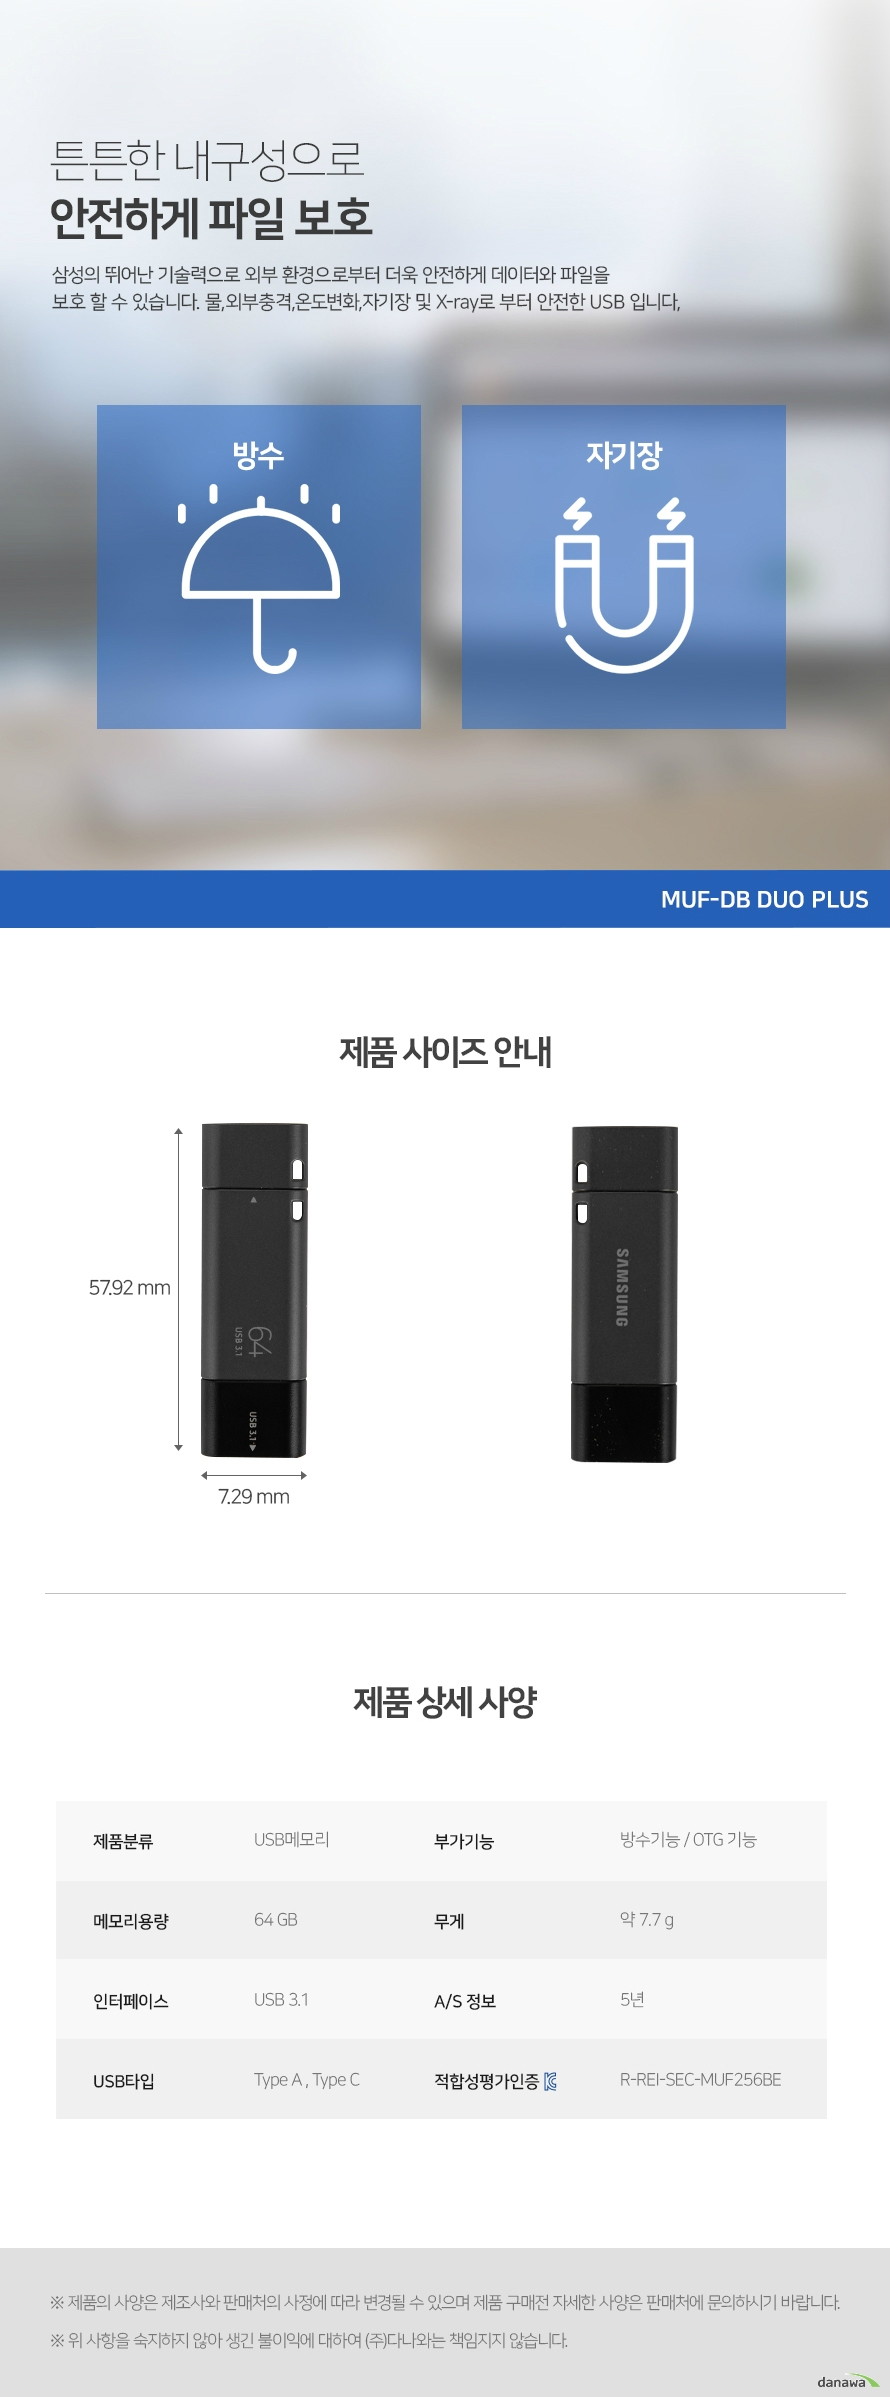 삼성전자  MUF-DB DUO PLUS(64GB)